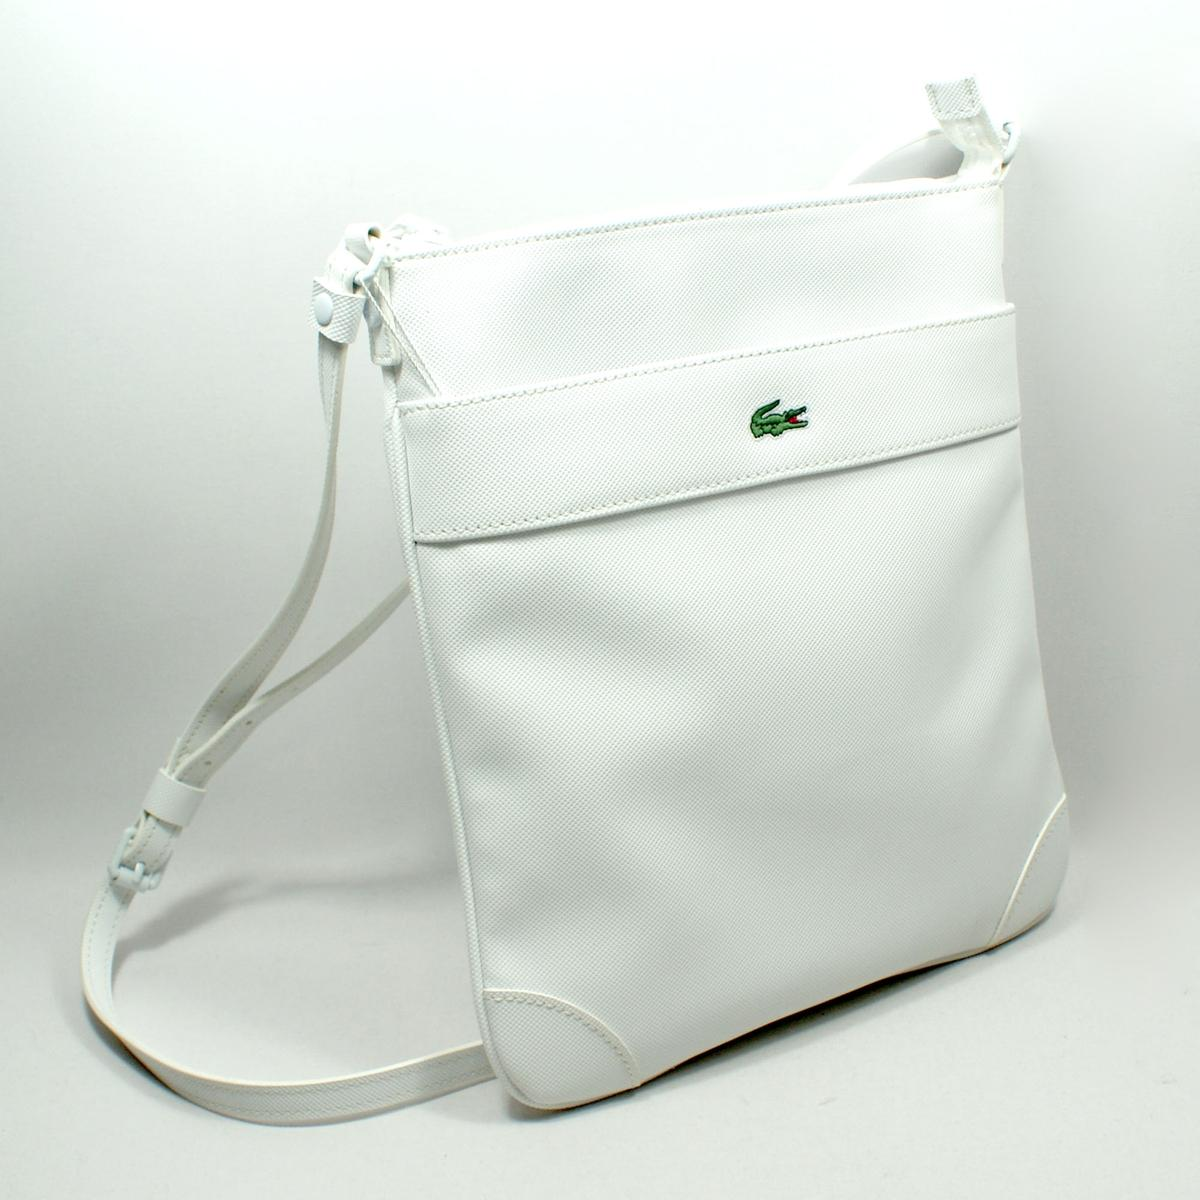 Lacoste Bright White Vertical Flat Crossover Bag/ Crossbody Bag # ...